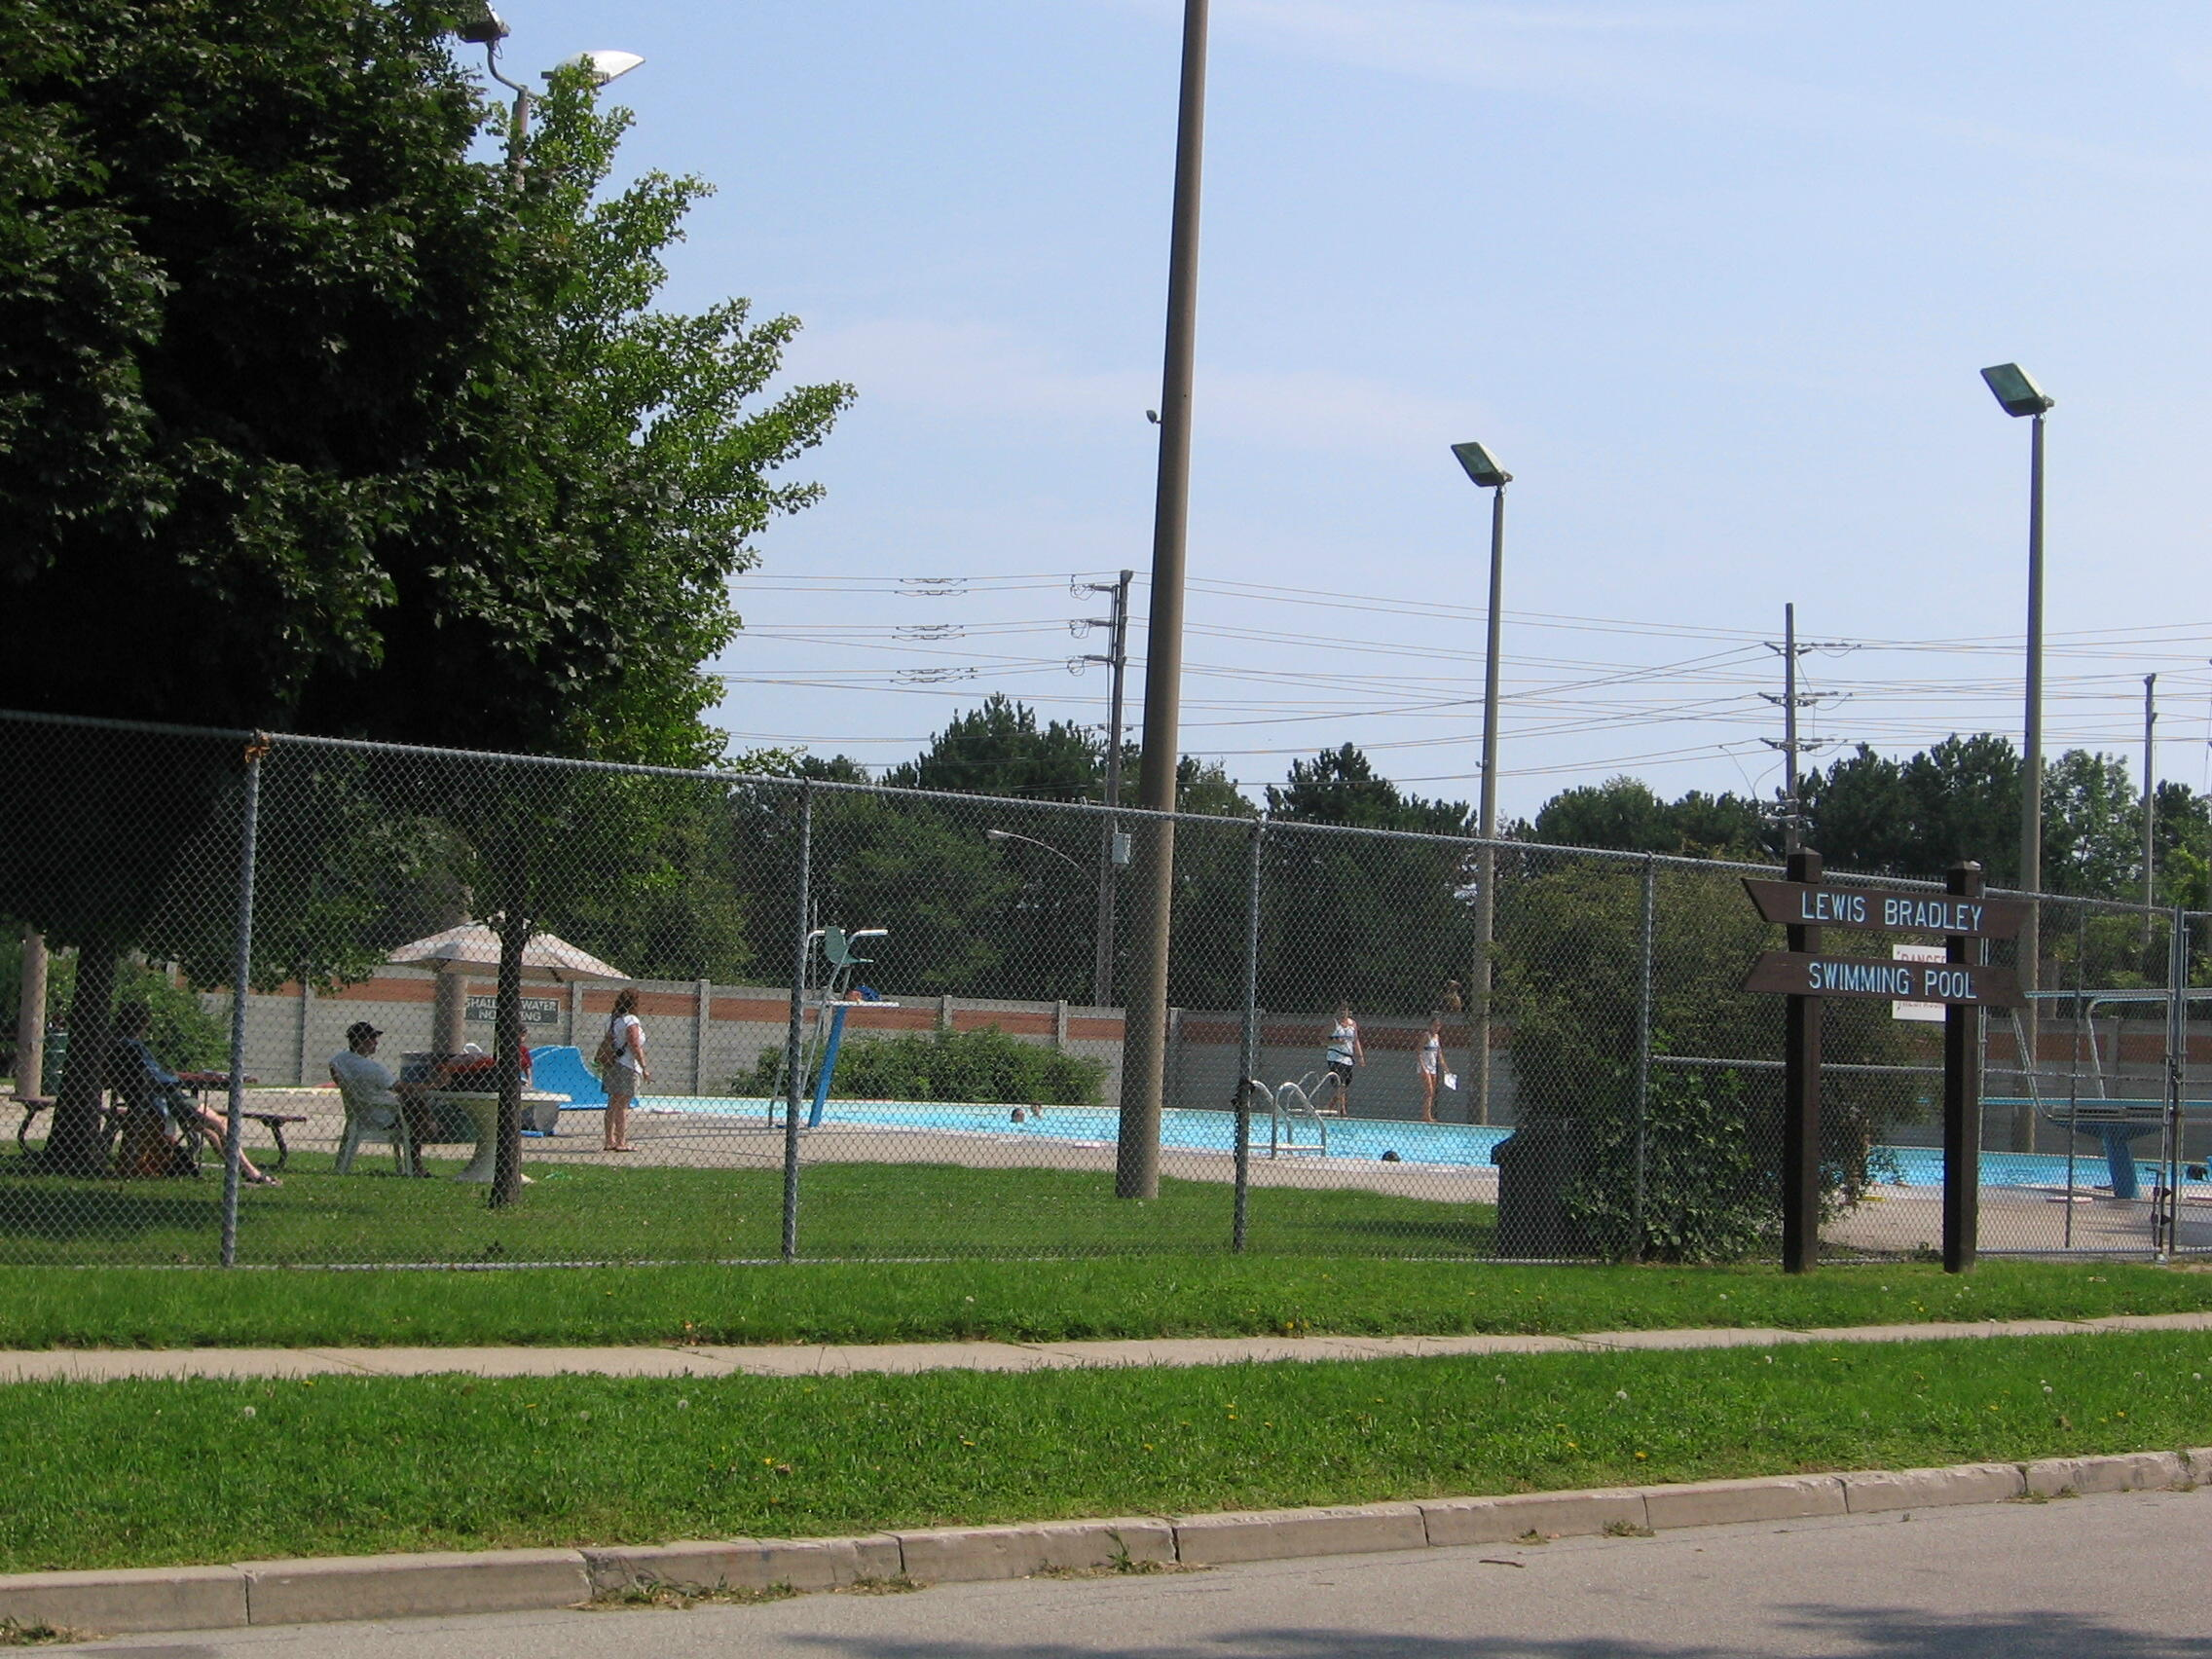 Lewis Bradley Outdoor Pool